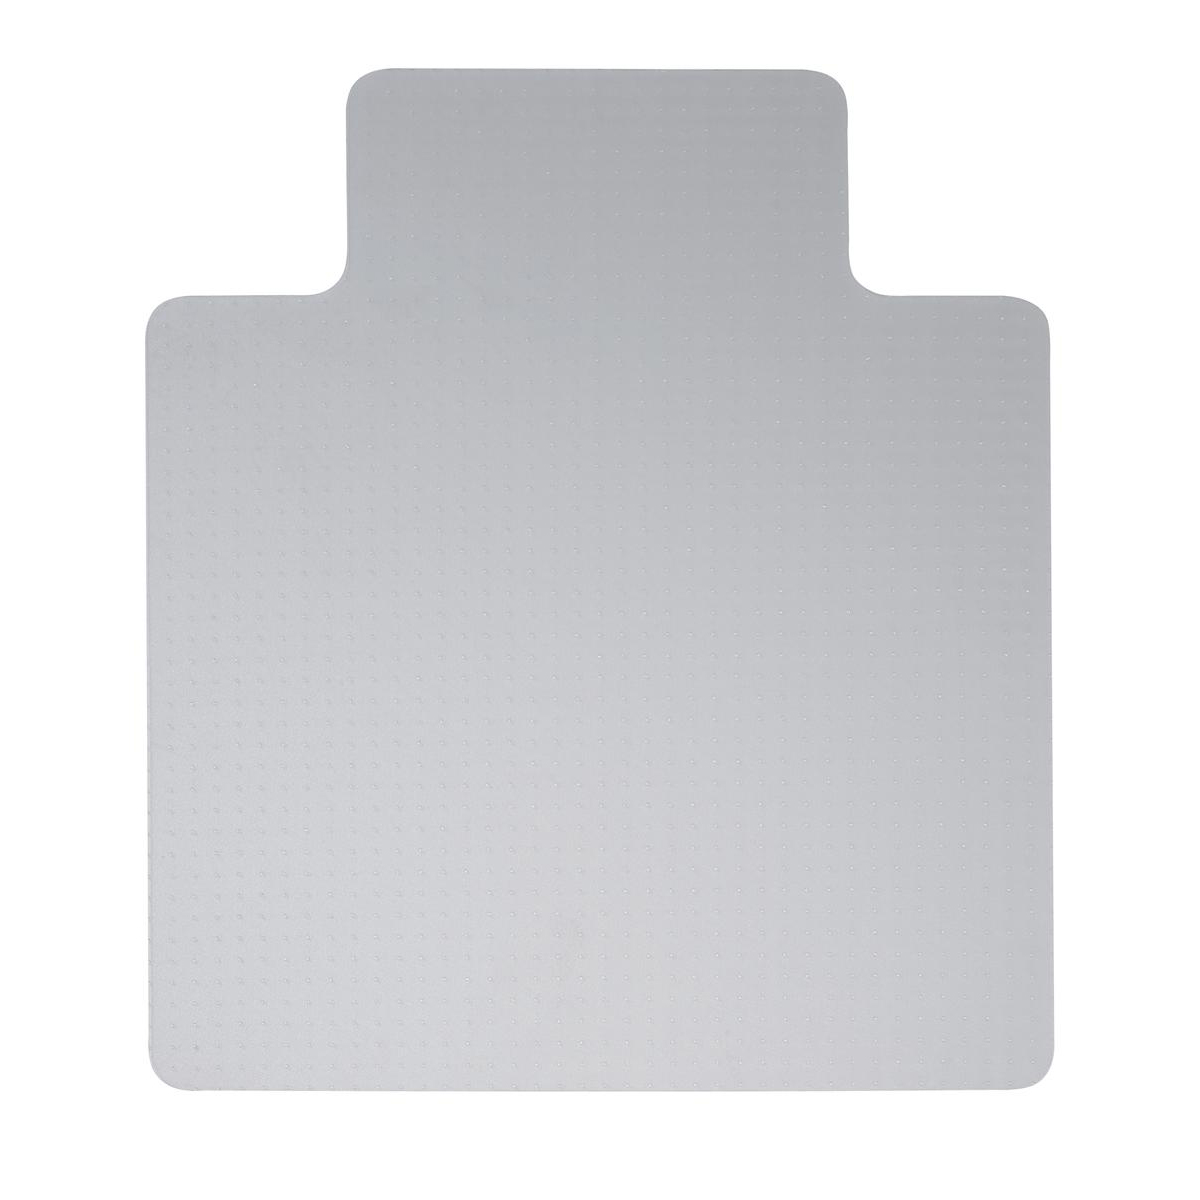 5 Star Office Chair Mat For Hard Floors PVC Lipped 900x1200mm Clear/Transparent